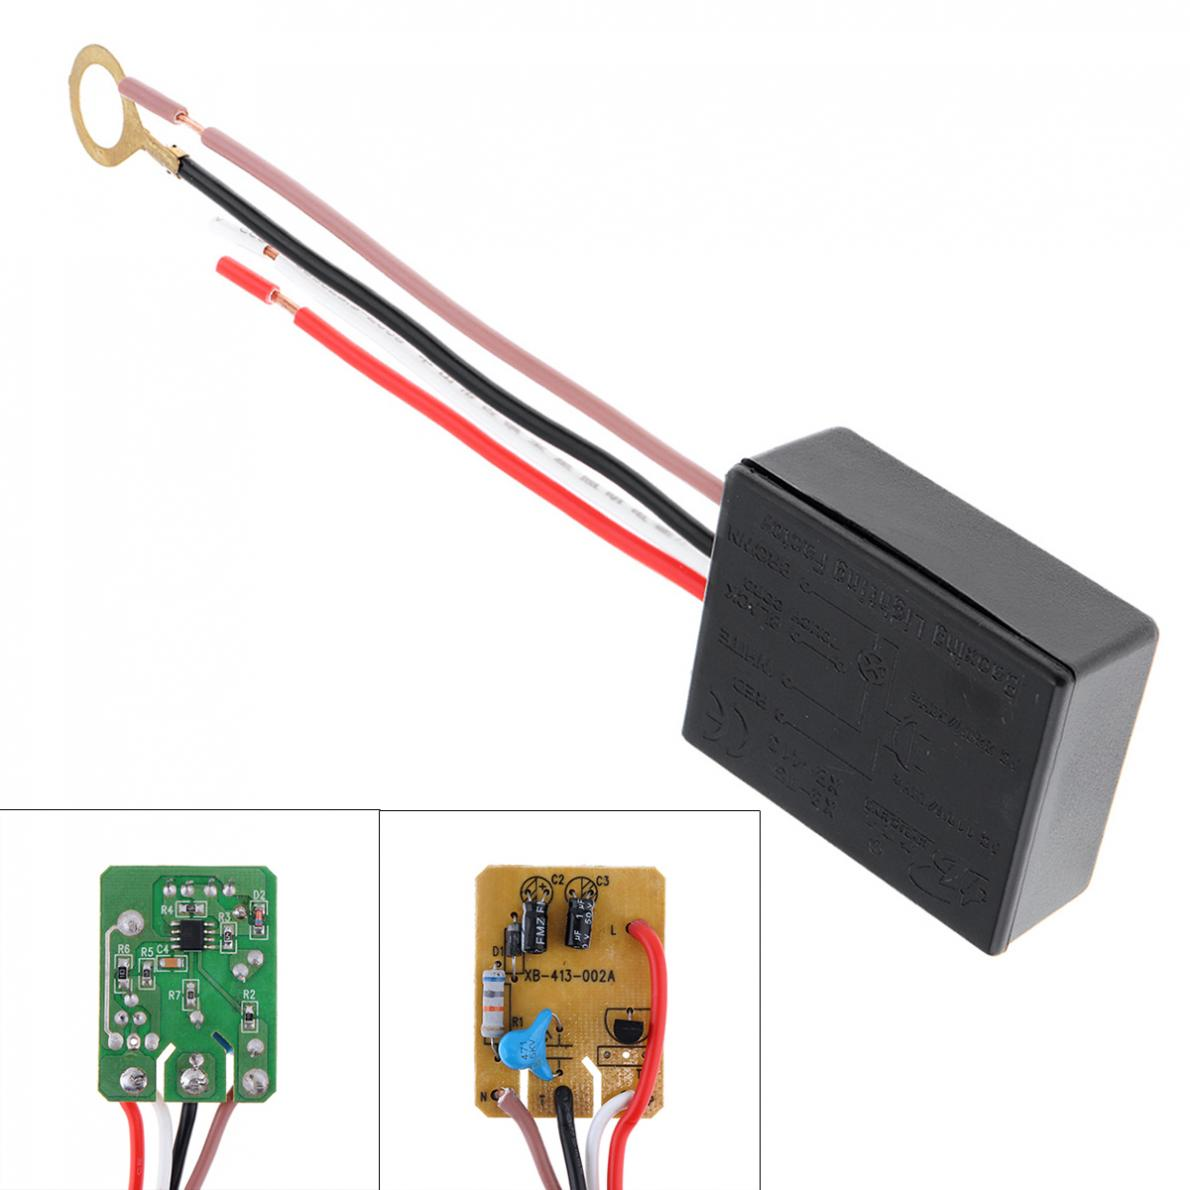 Four Stage Dimming Touch Switch Desk Light Touch Lamp 3 Way Control Sensor Switch Dimmer For Bulbs AC 220V 1A Light Accessories